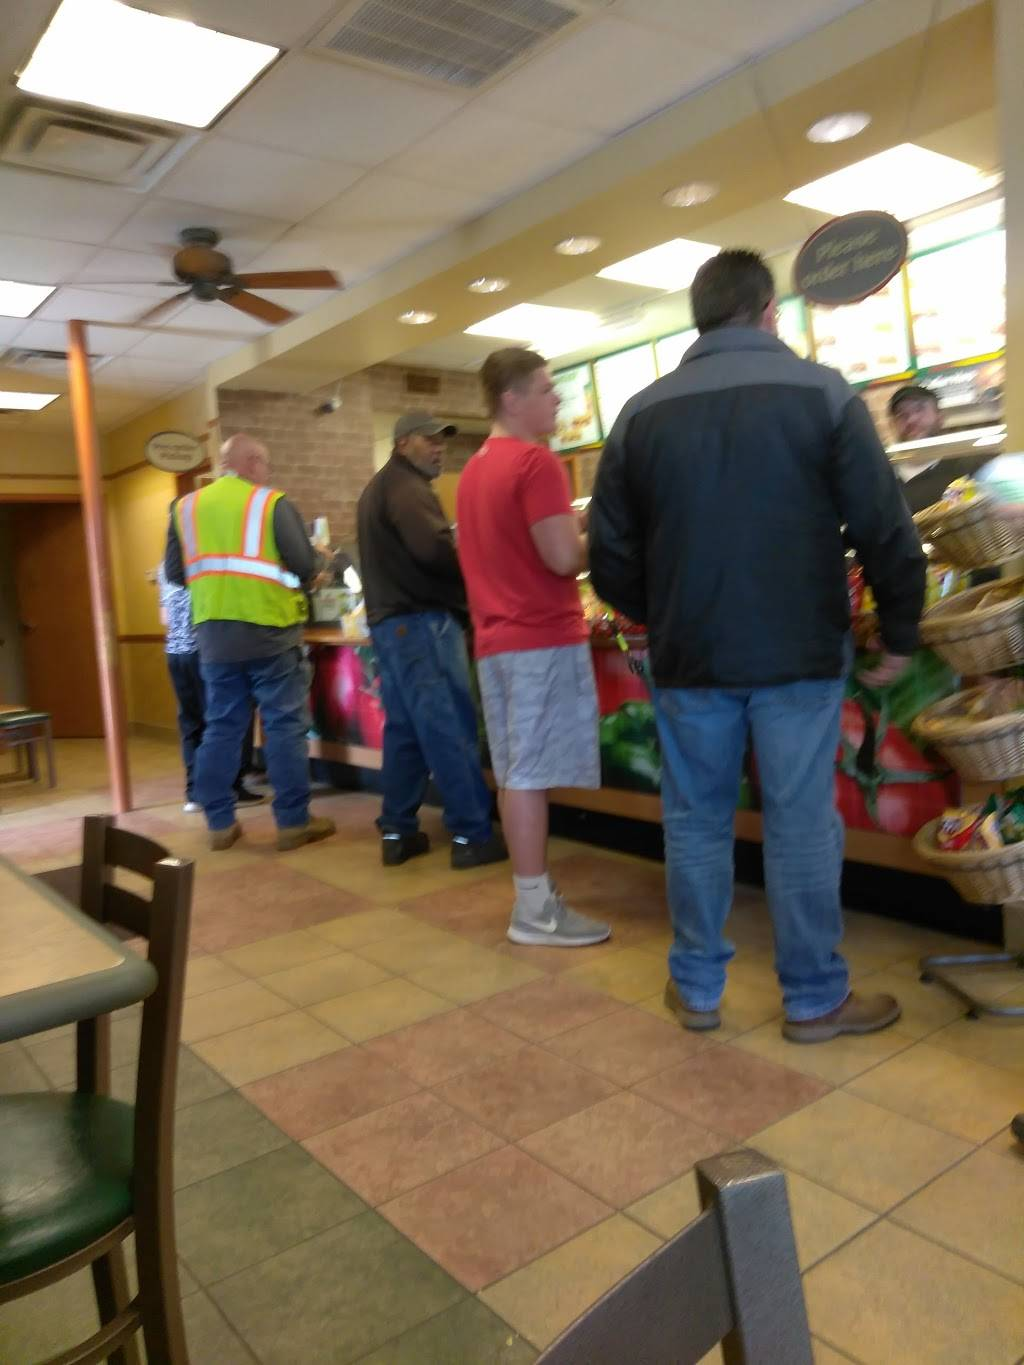 Subway - meal takeaway  | Photo 1 of 2 | Address: 1501 Woodville Rd, Millbury, OH 43447, USA | Phone: (419) 836-3325